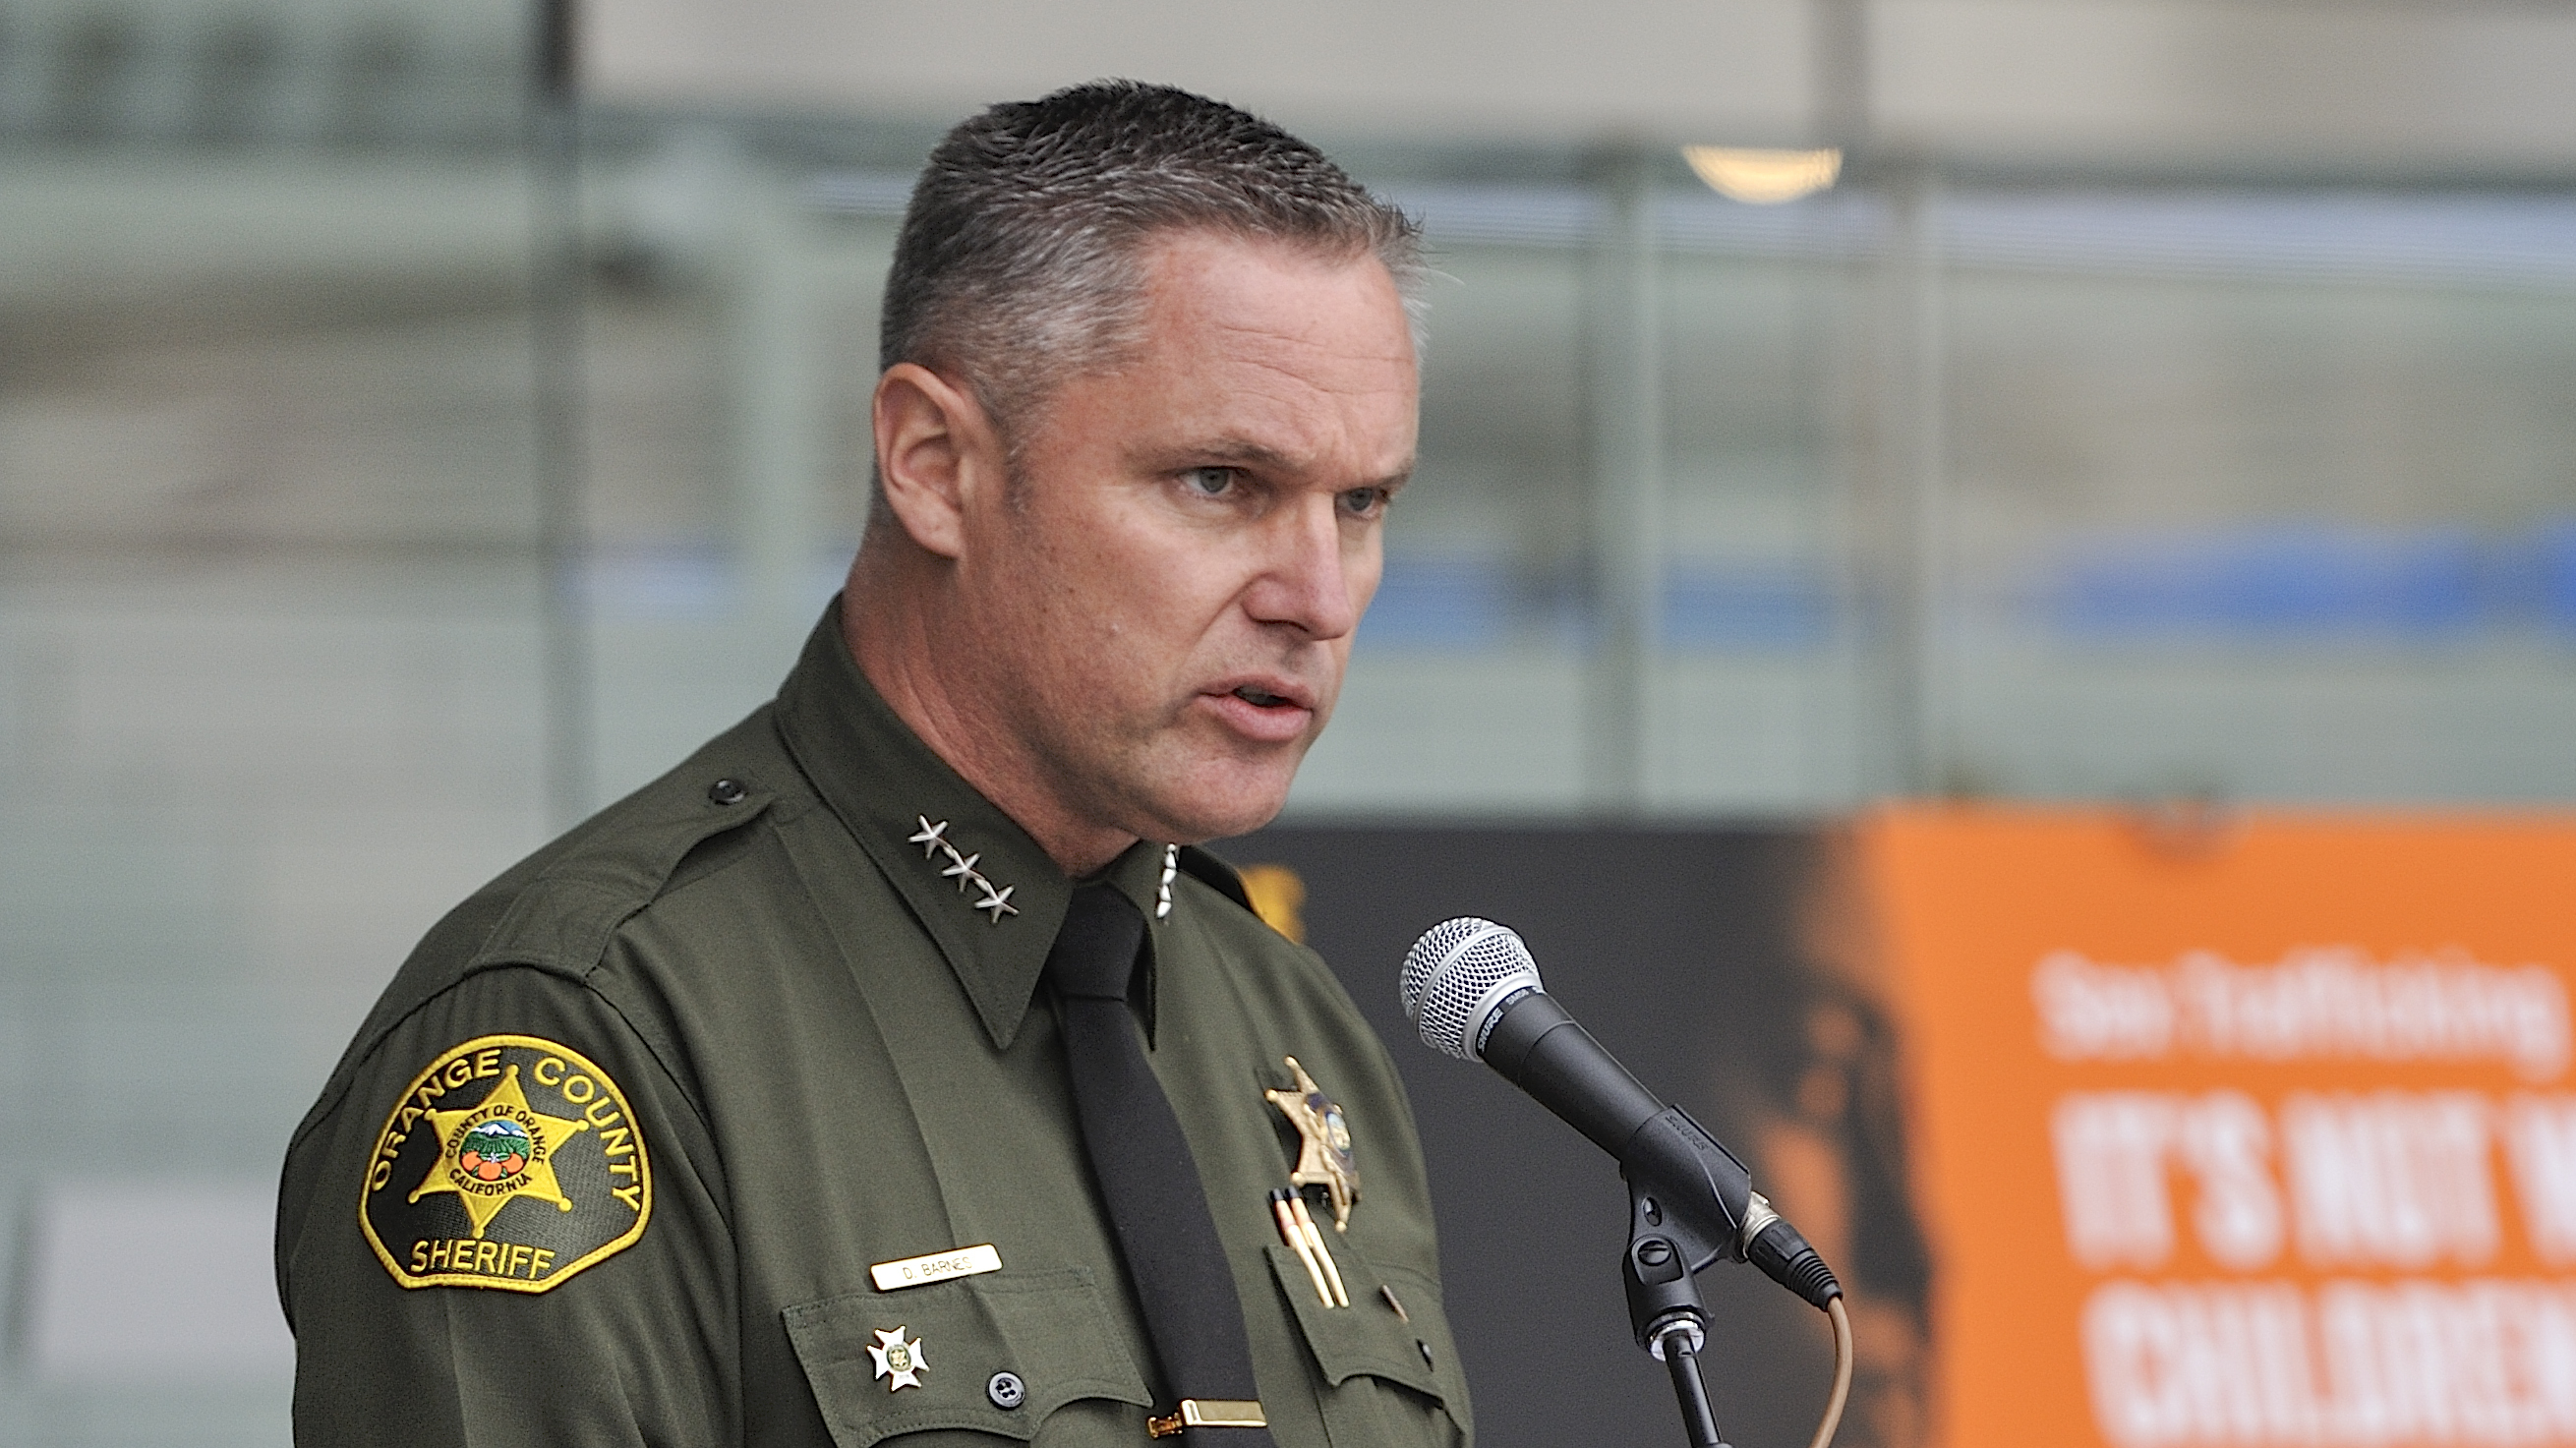 California Sheriff refusing to comply with judge's order to release prisoners